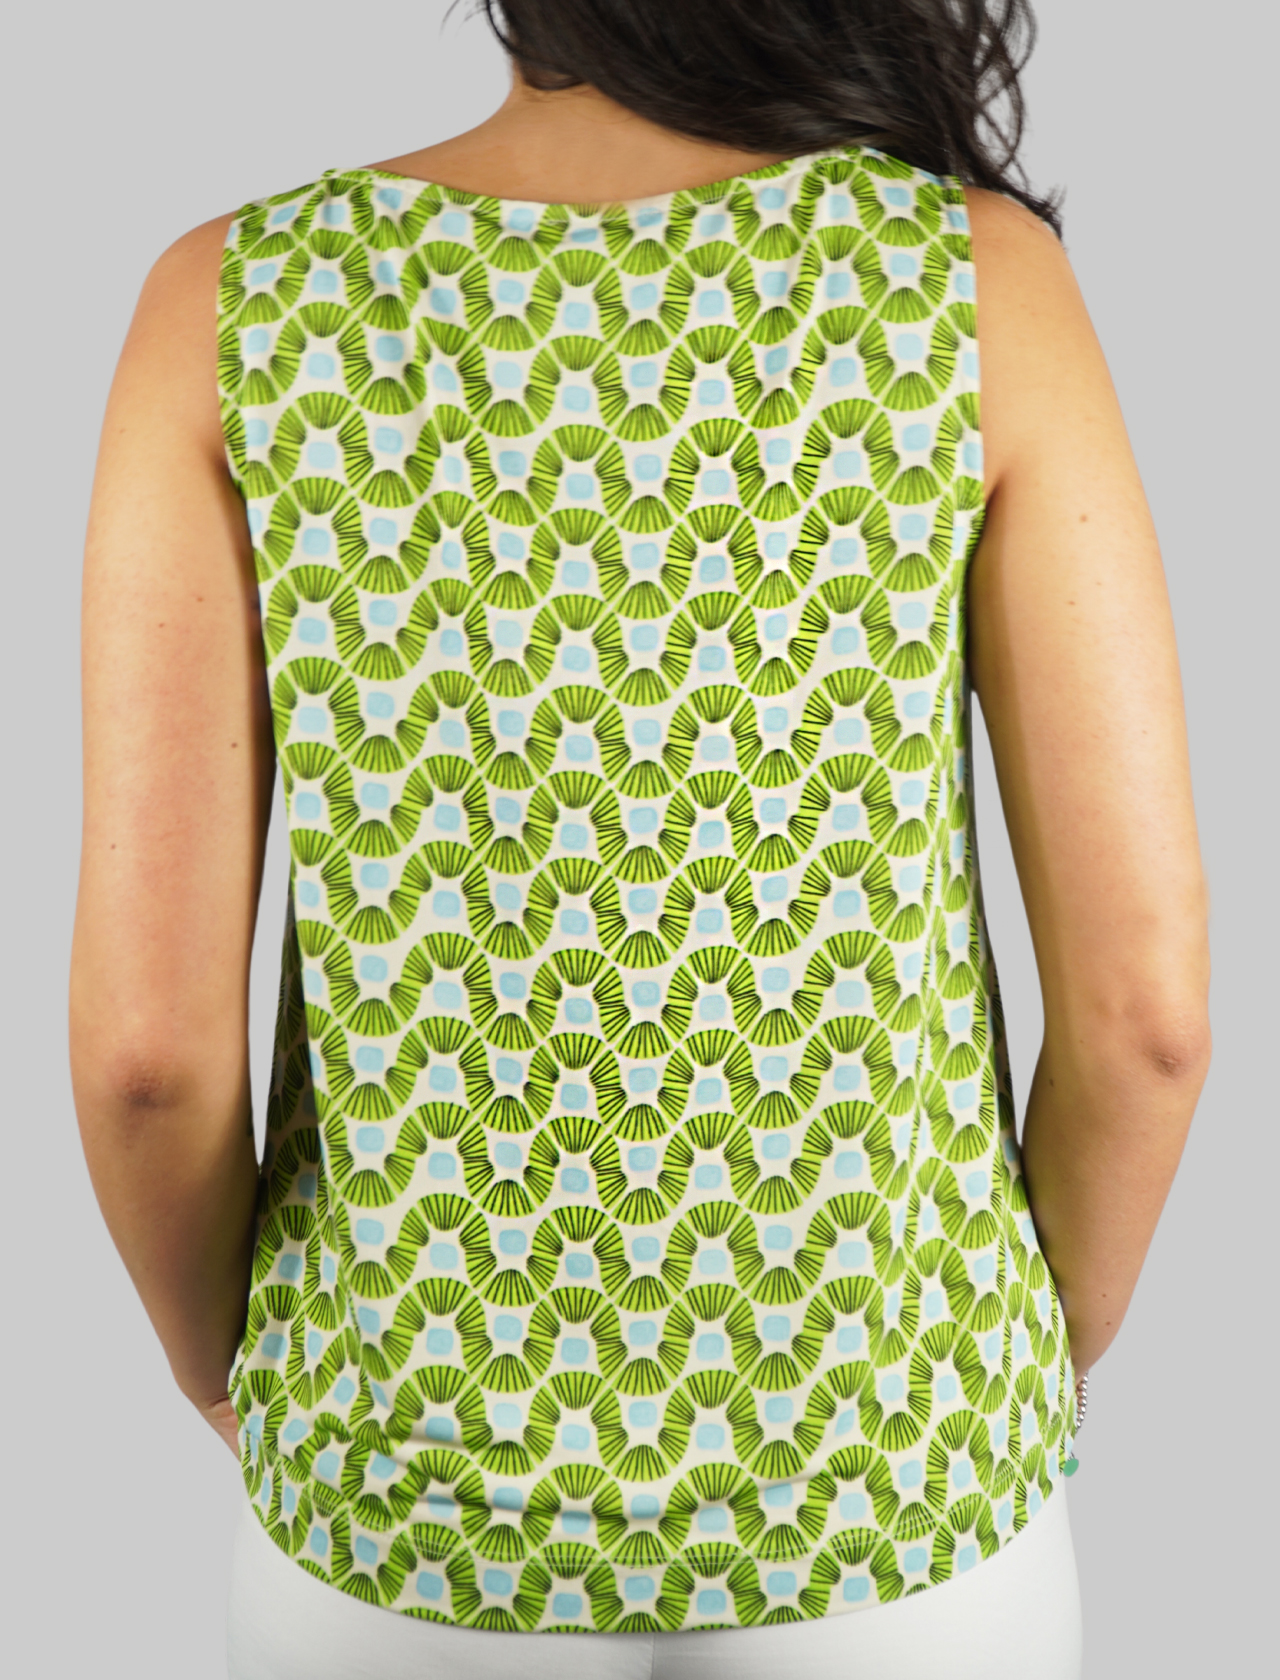 Women's Clothing Top Jersey Happy Frame in Green and Turquoise Pattern Maliparmi | Shirts and tops | JP539470493C6015